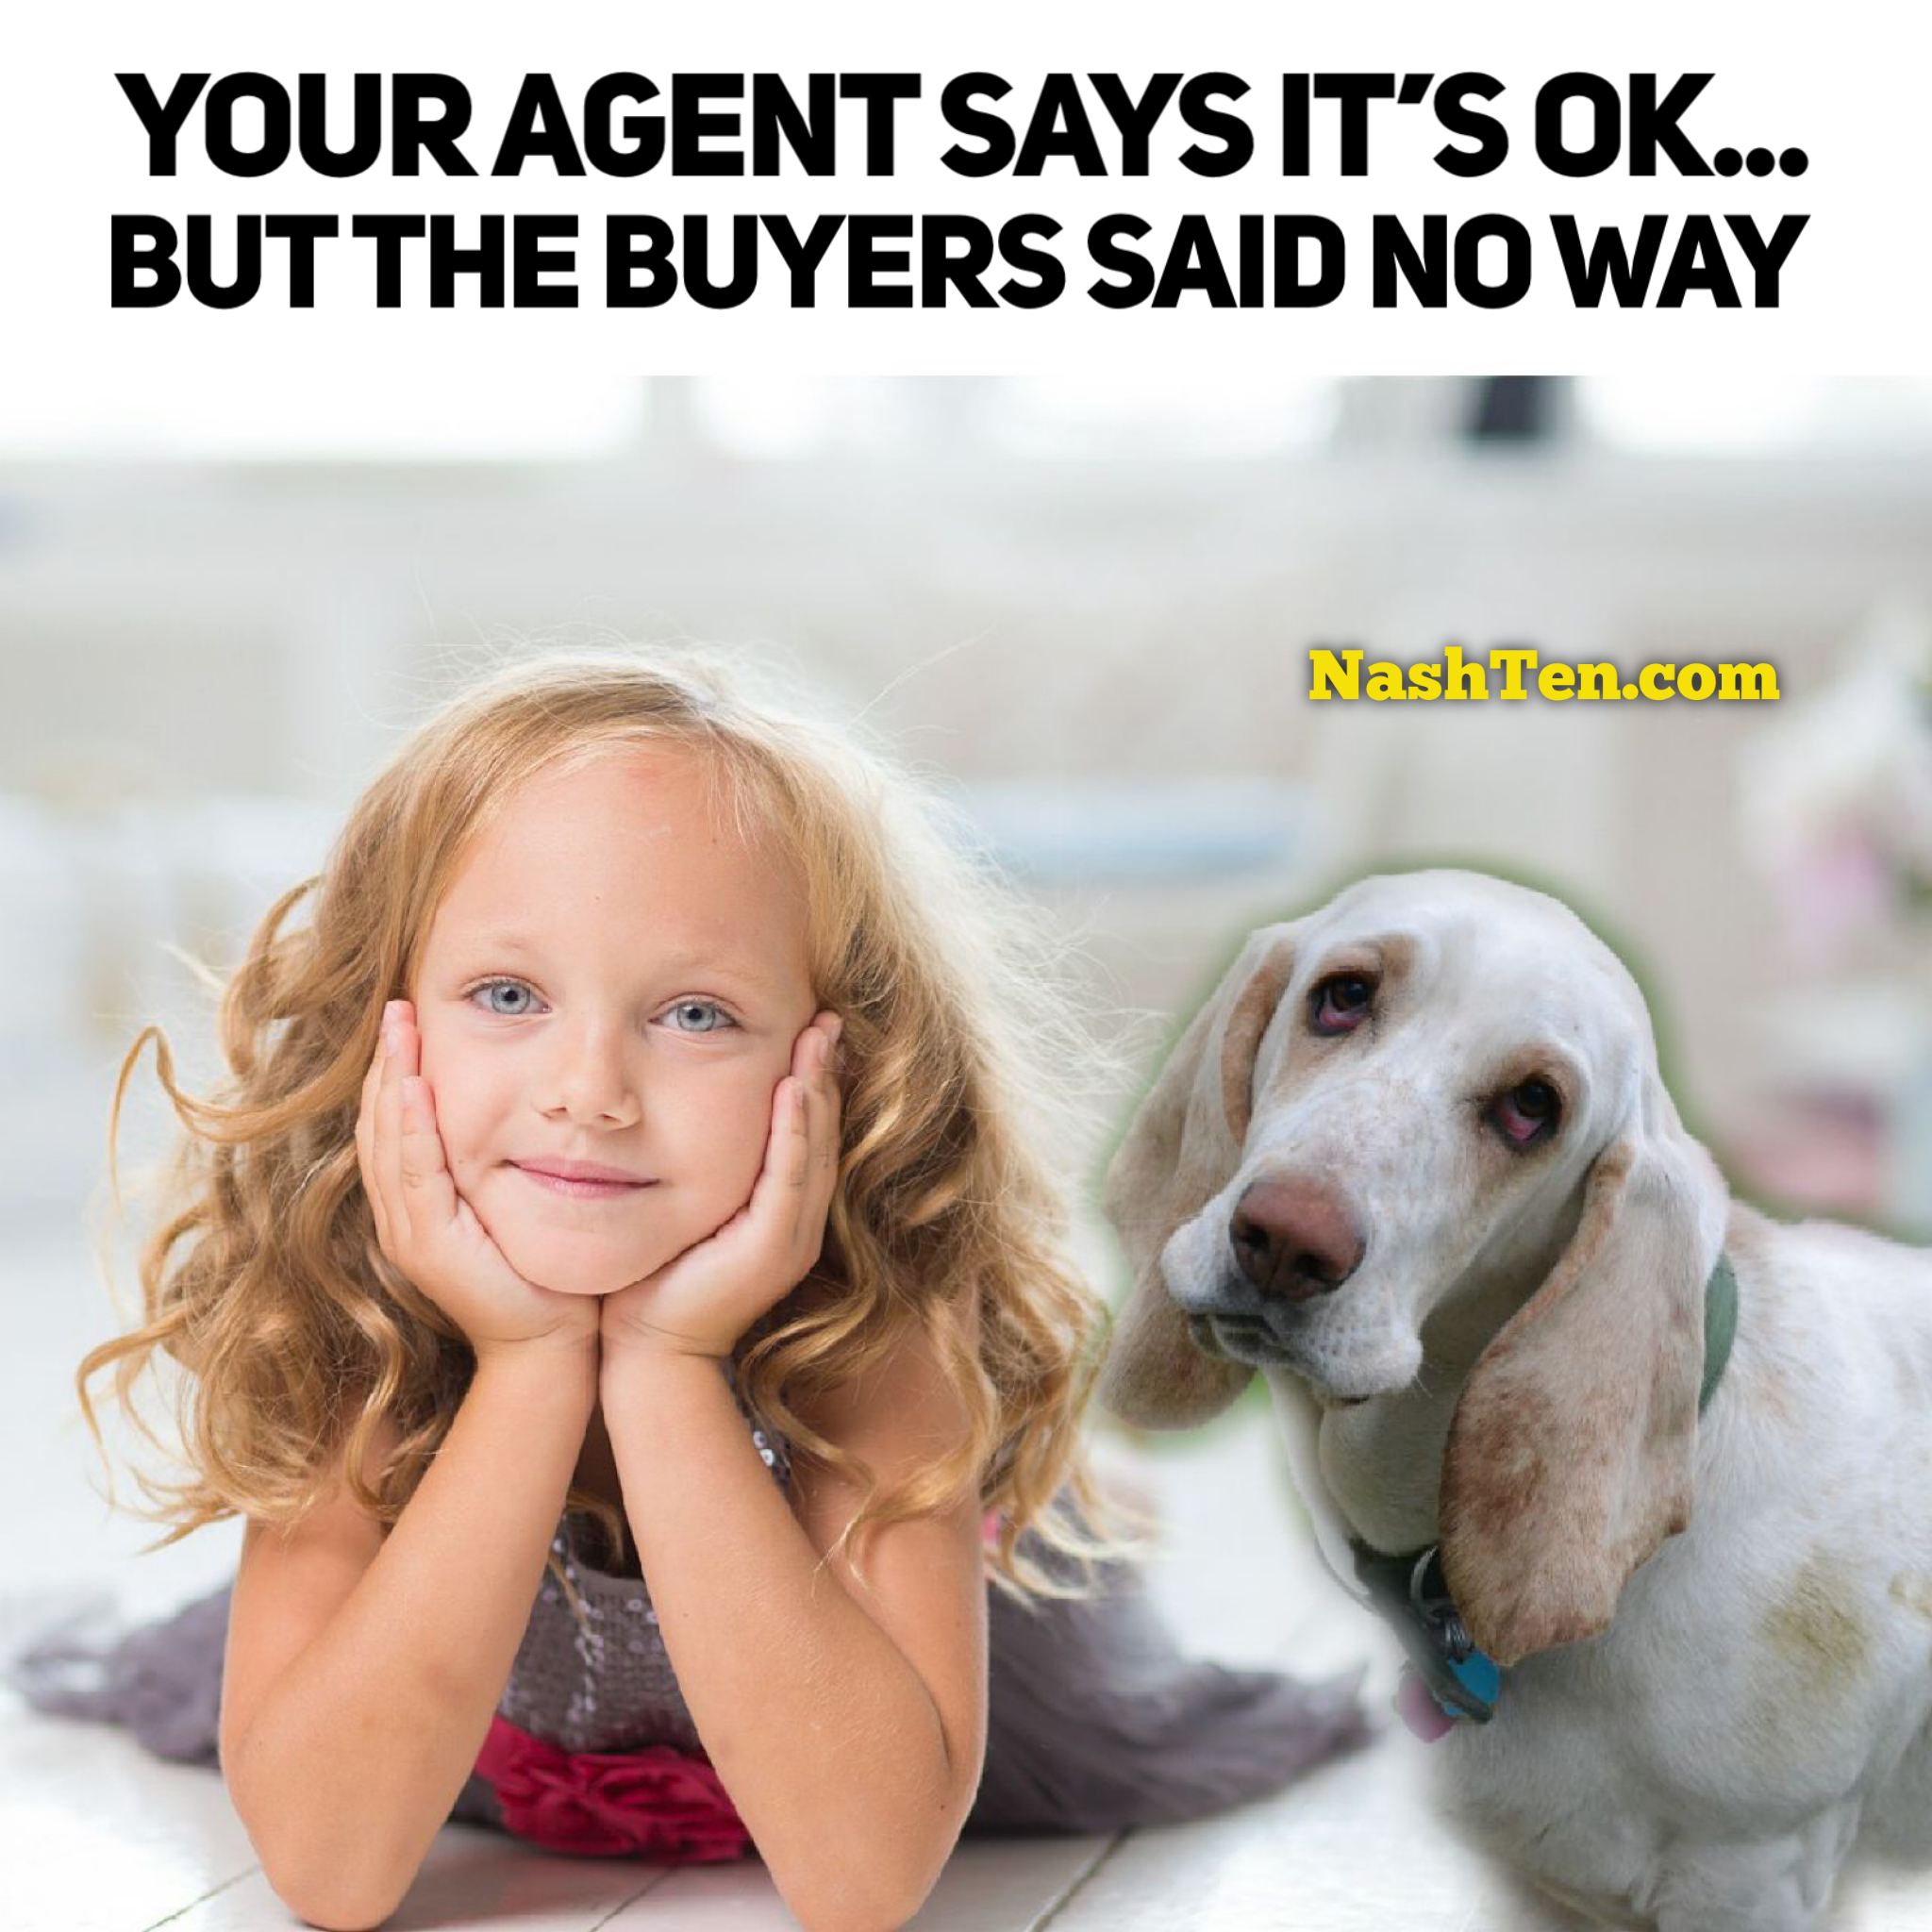 Agent says yes, buyers say no